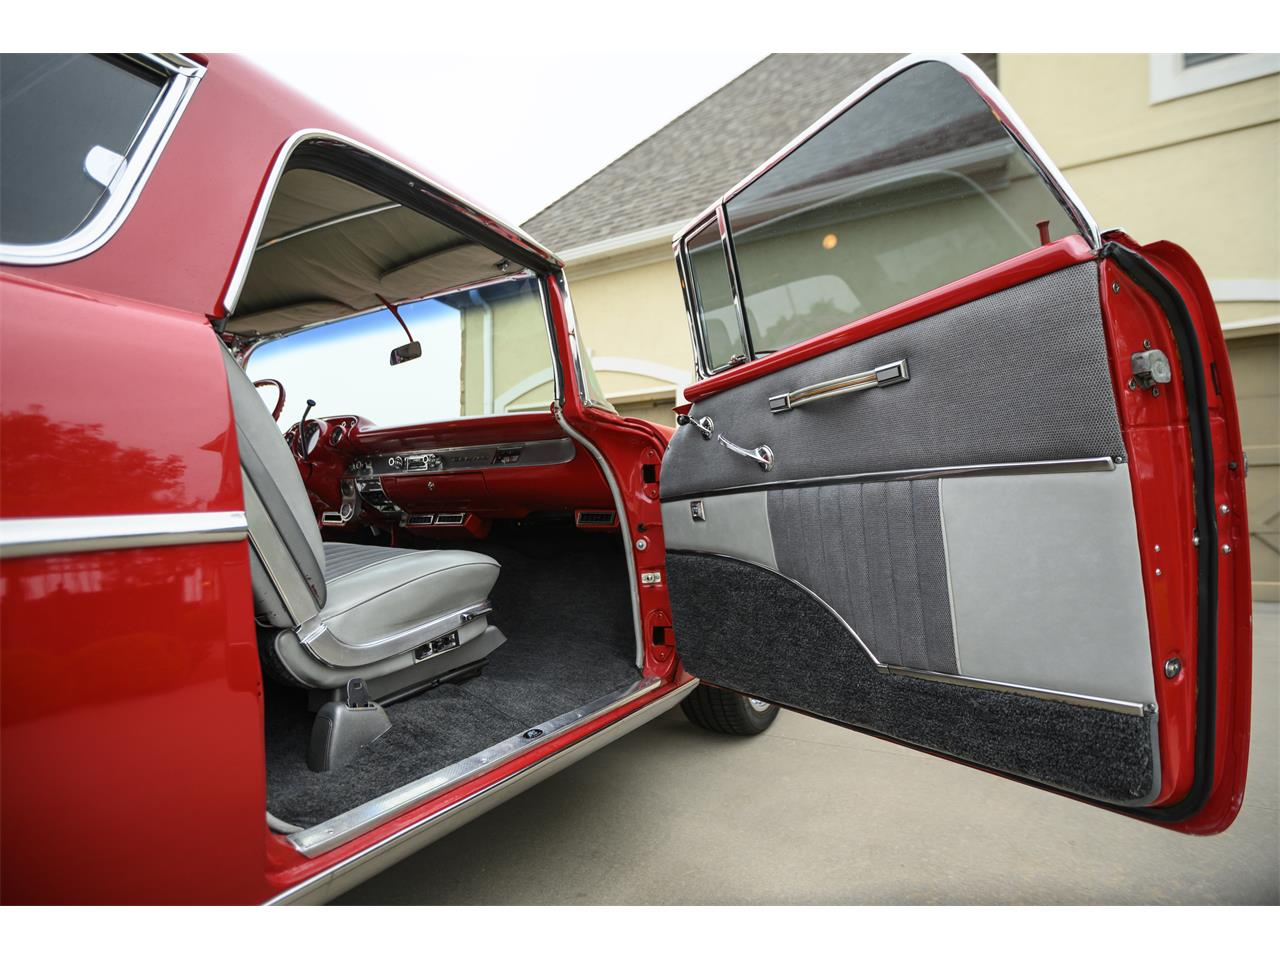 Large Picture of 1957 Chevrolet Bel Air Nomad located in Oklahoma Offered by a Private Seller - PZTB